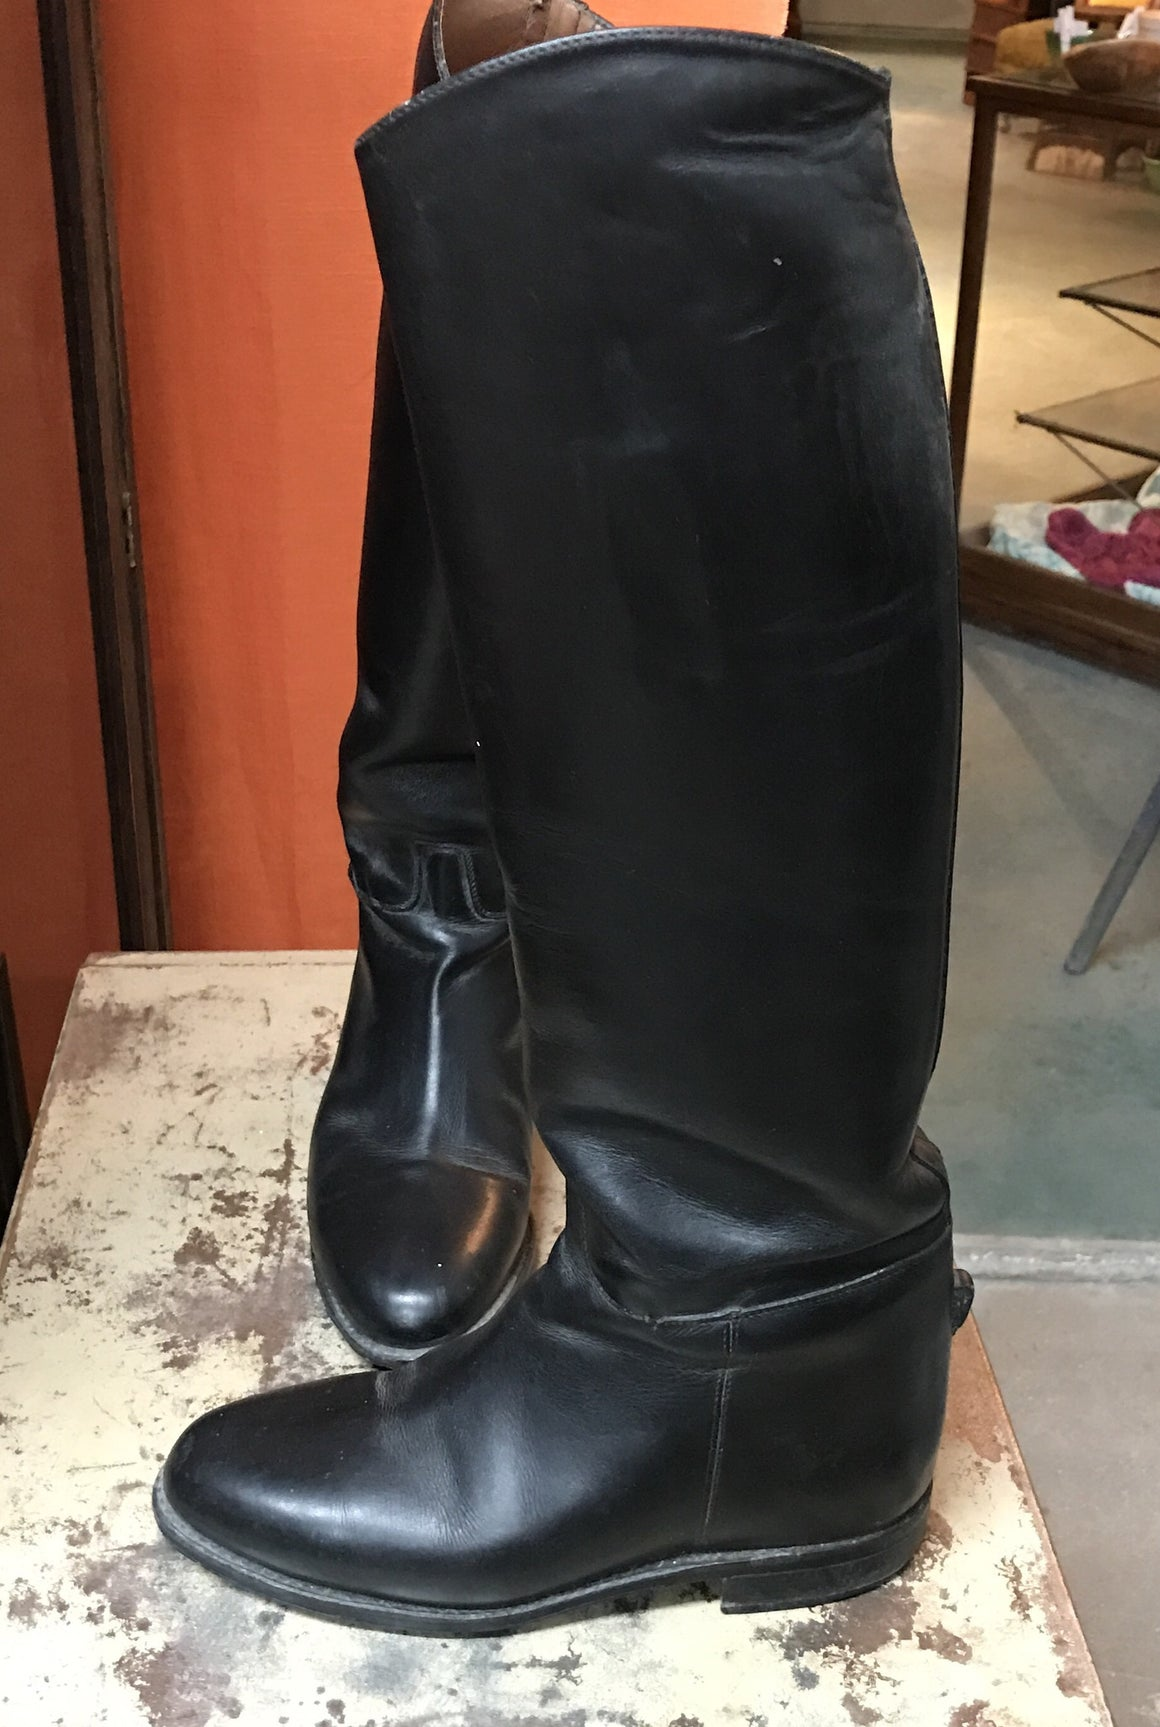 Riding Boots - Pytchley 8.5 Slim Calf - VINTAGE JOURNEY MARKET - Upcycling & Restoration